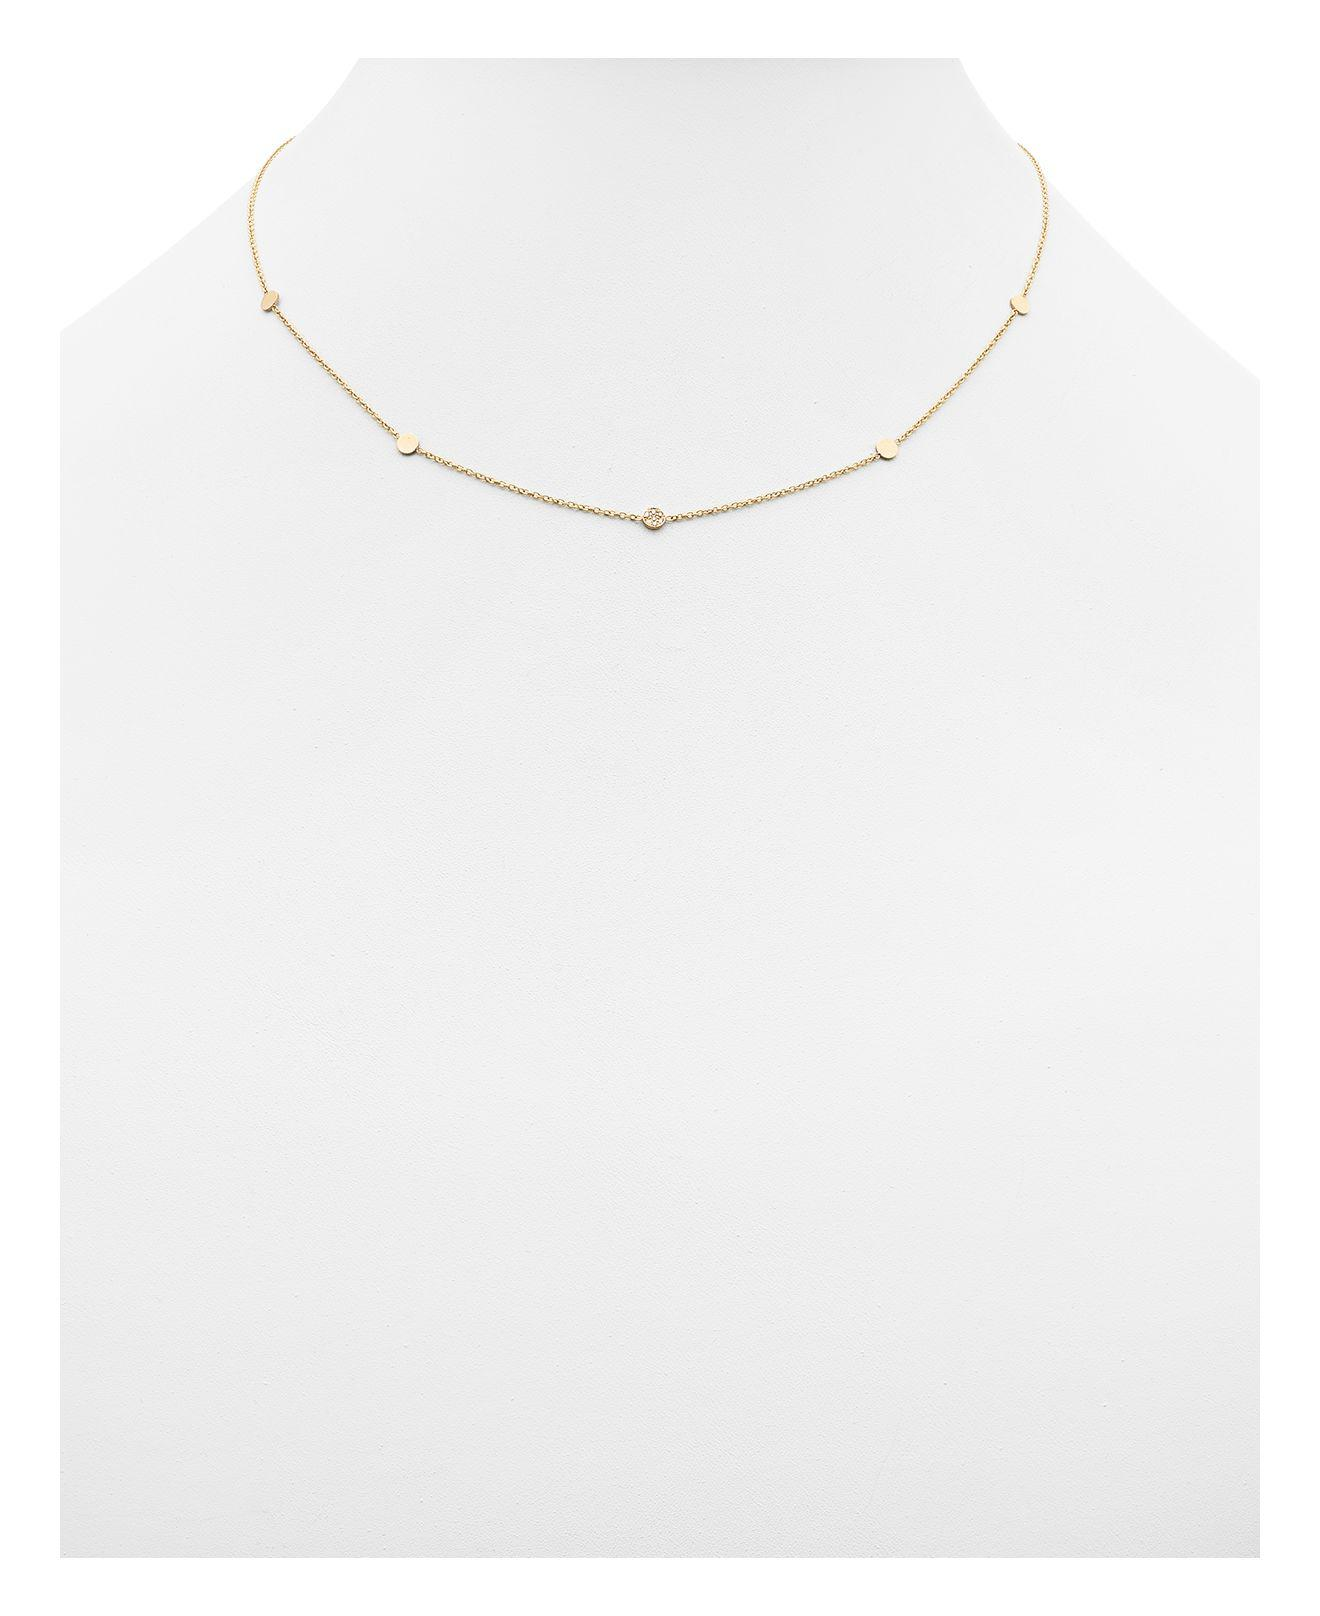 """Zoe Chicco Zoe Chicco 14k Yellow Gold Itty Bitty Round Disc Necklace With Diamonds, 18"""" in Metallic"""